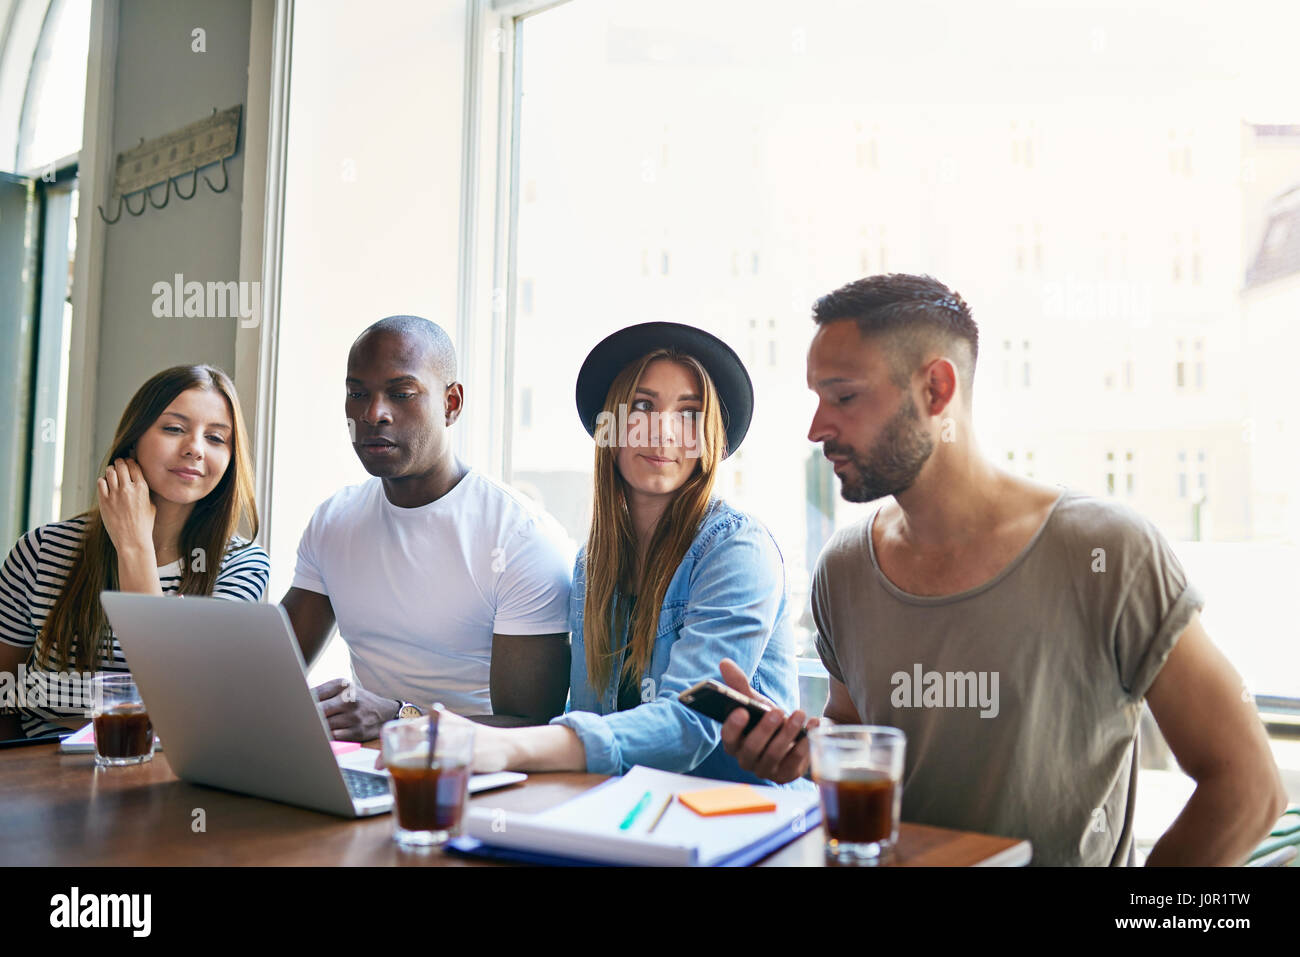 Group of four young co-workers sitting at table with laptop and having coffee while discussion in office. - Stock Image